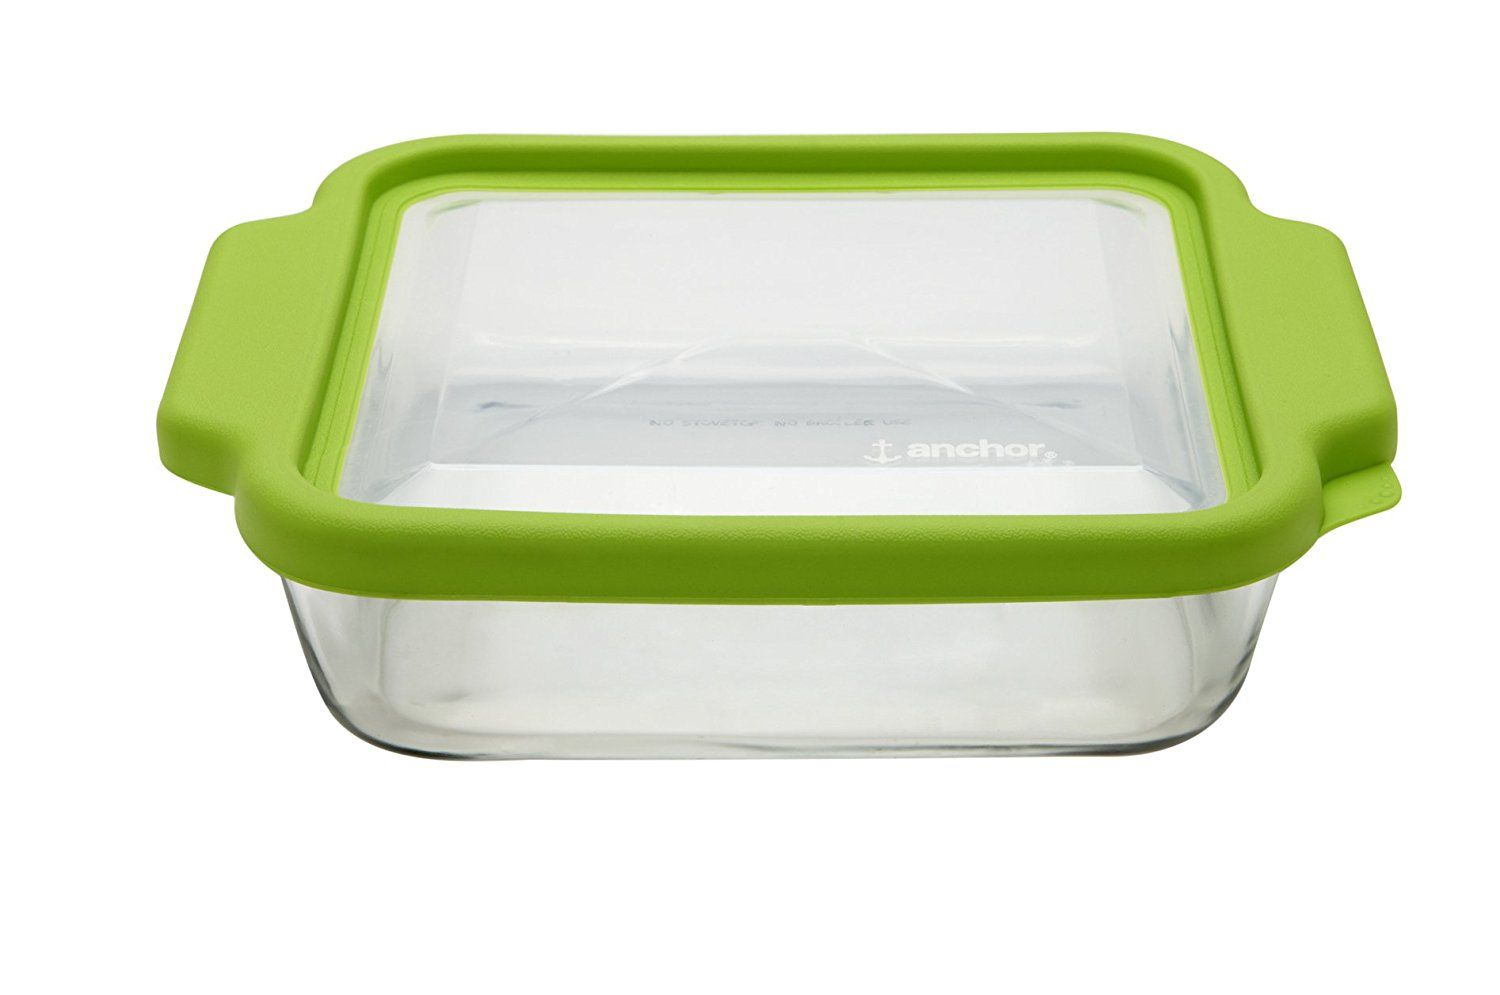 Anchor hocking 8inch square cake dish with green truefit